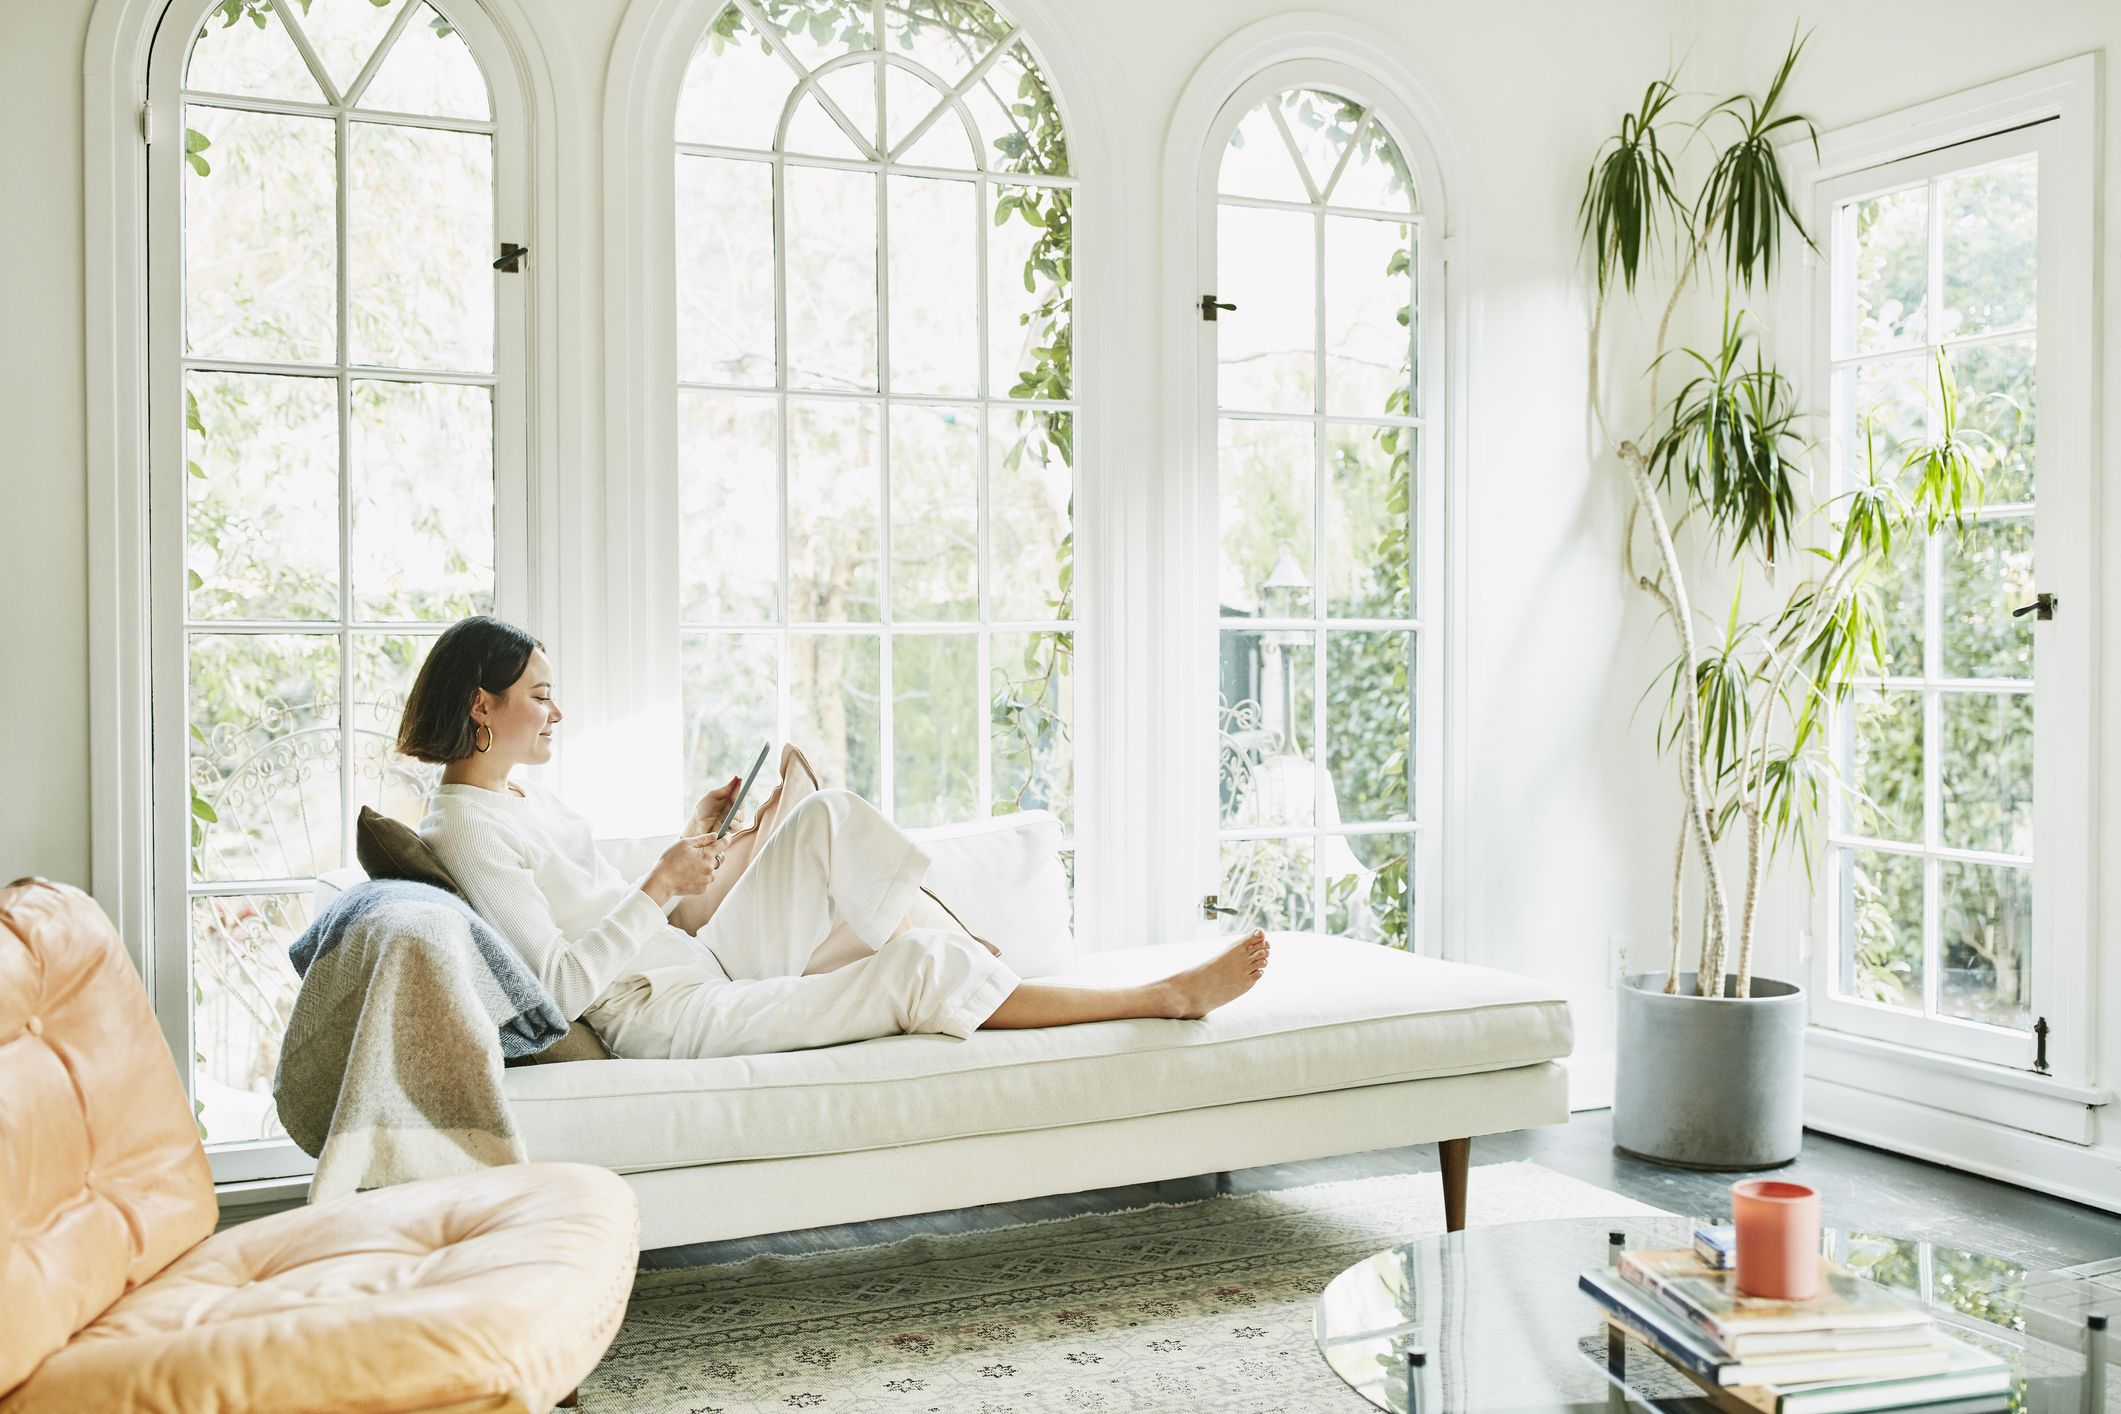 Get The Best Bang For Your Buck With These Top Furniture Tips